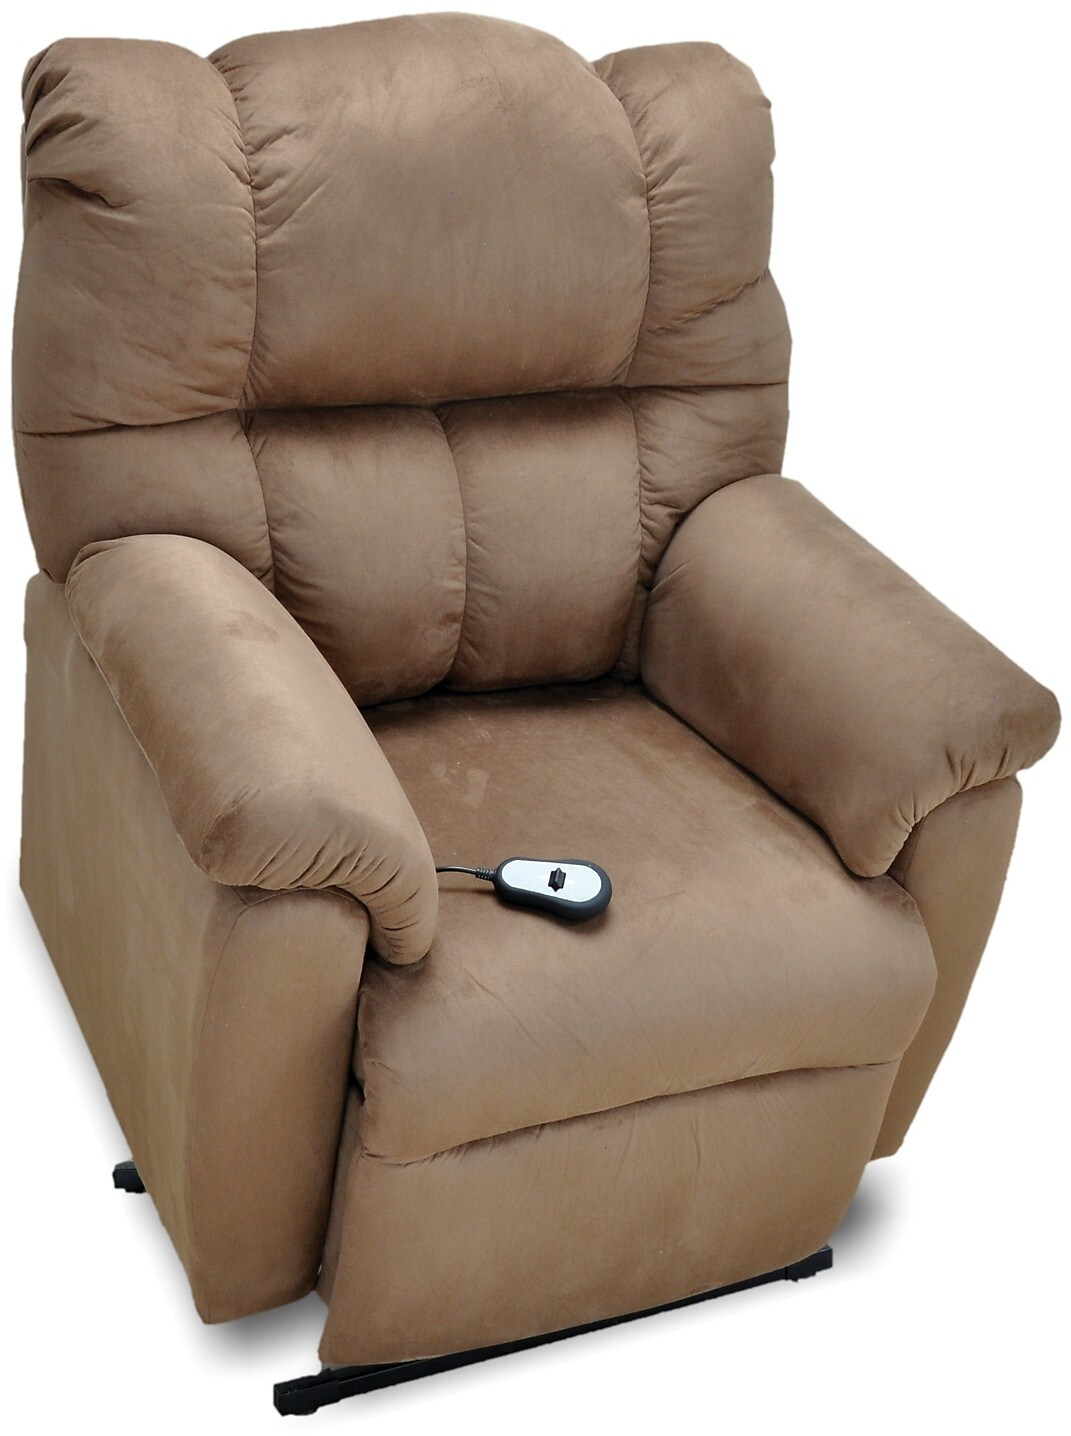 Recliner Lift Chairs Bonded Leather 3 Position Power Lift Recliner Brown